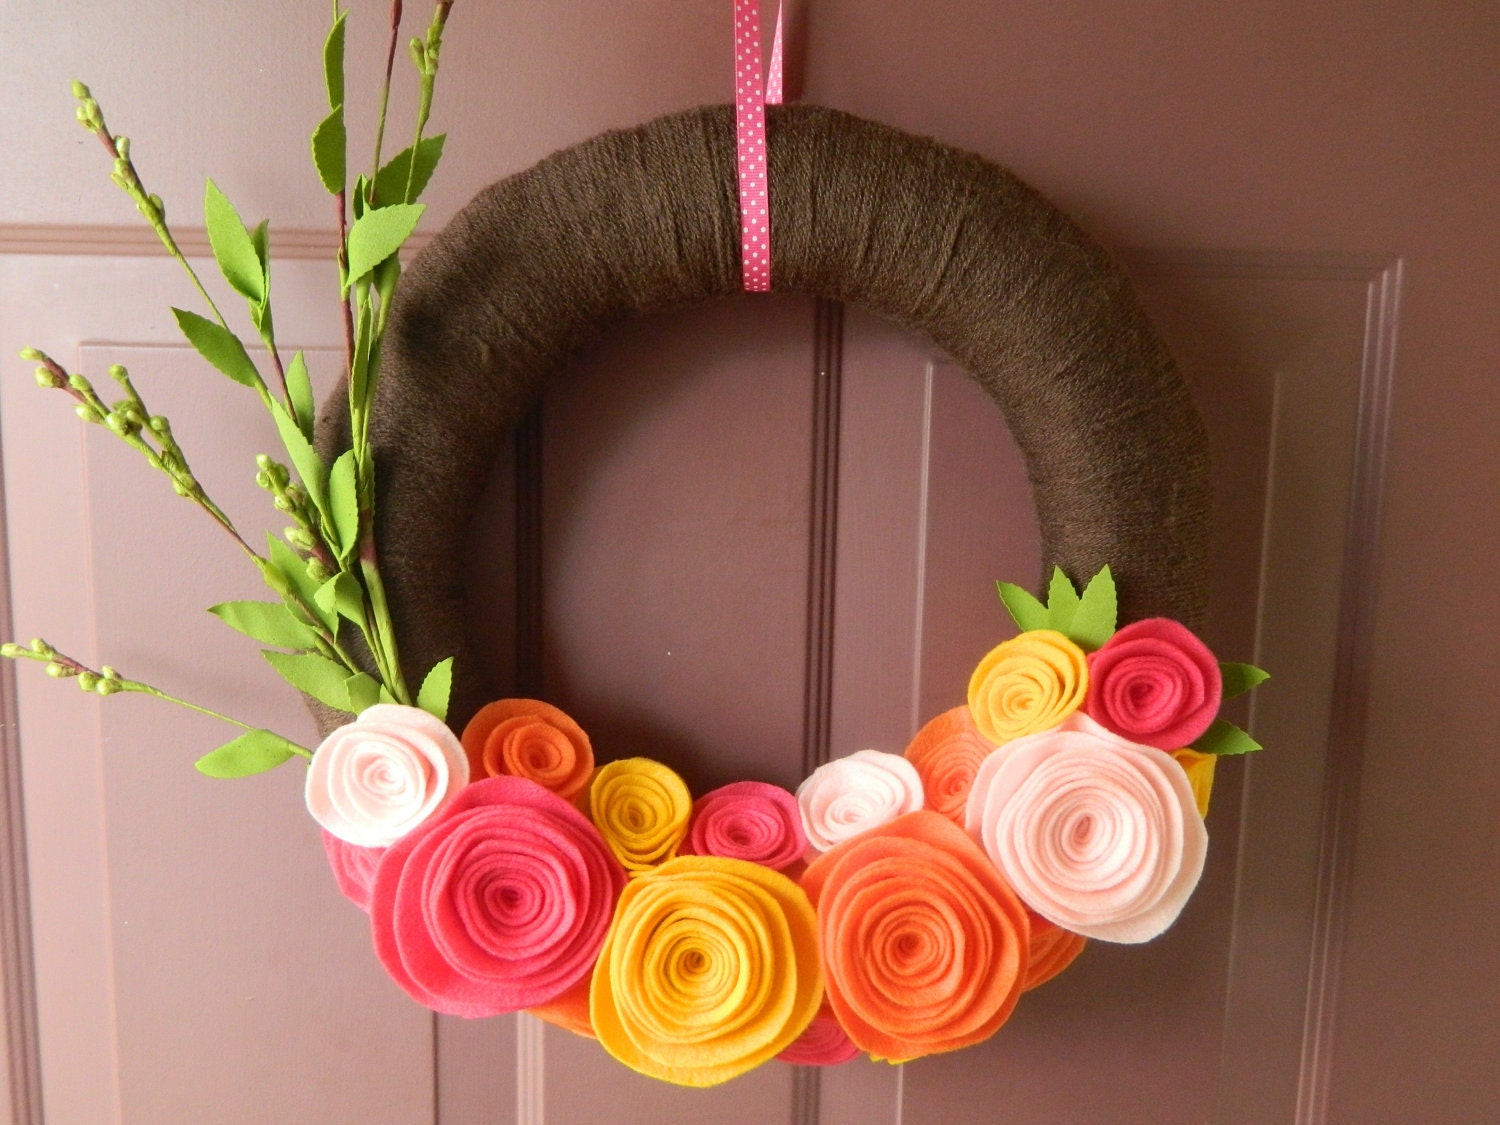 Handmade Decorative Item